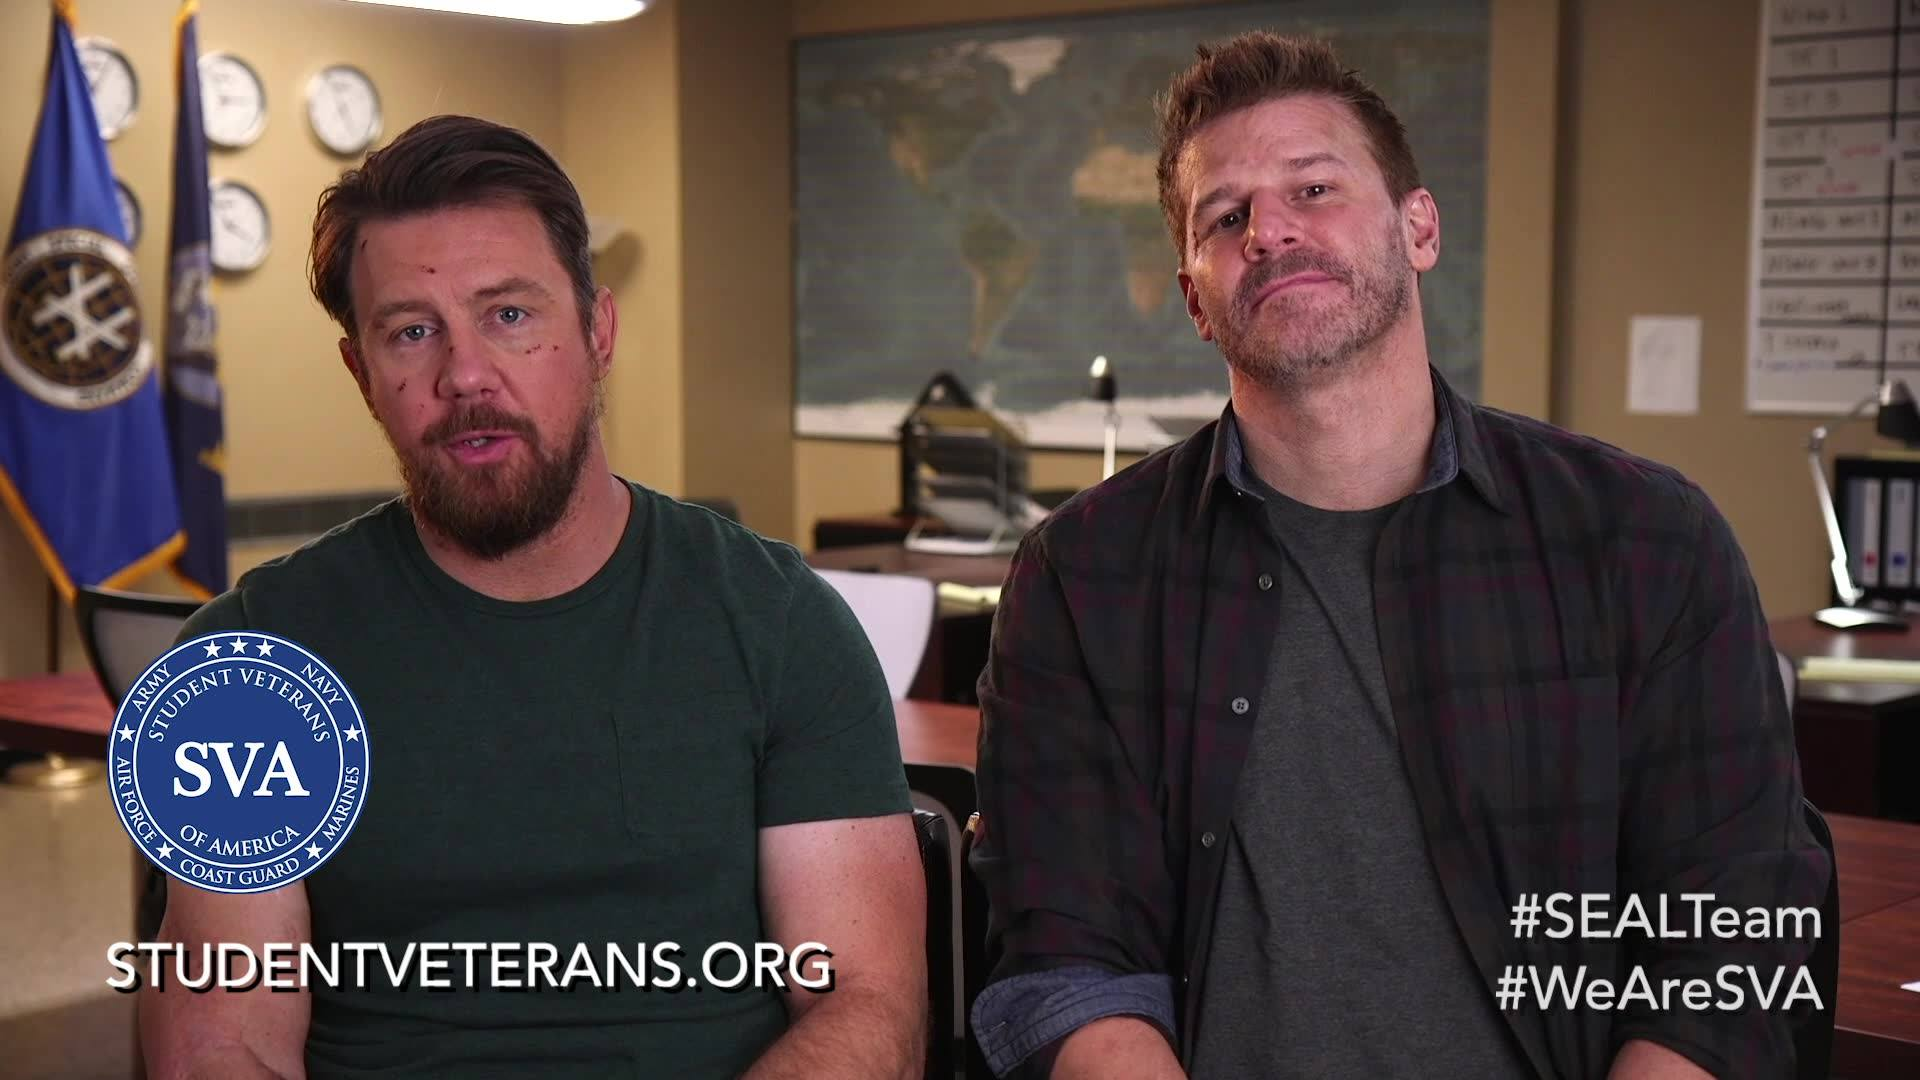 David Boreanaz and Tyler Grey of SEAL Team join Student Veterans of America to bring you an important message this Veterans Day. Visit studentveterans.org to learn more. #WeAreSVA #GIBillGrad #SEALTeam